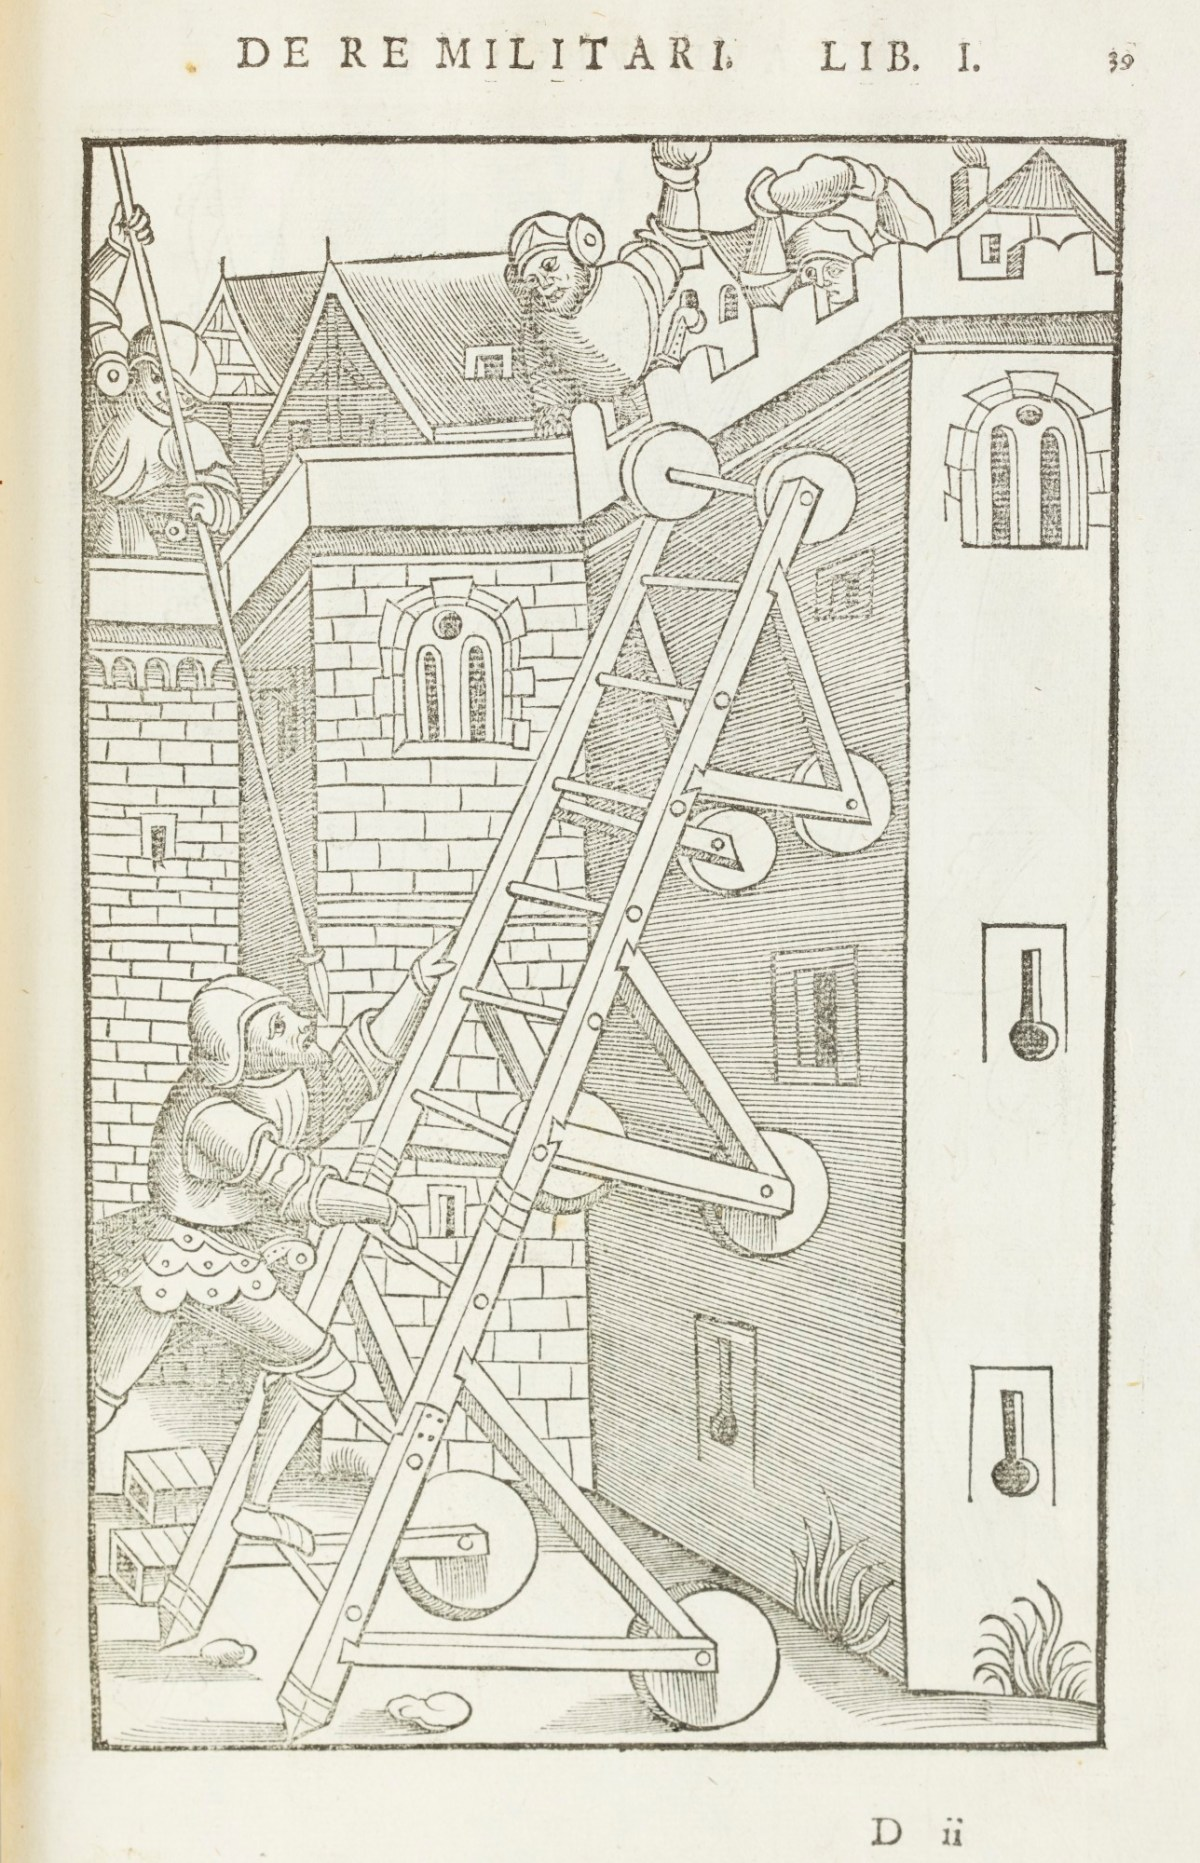 Siege Ladder : siege, ladder, Medieval, Siege, Ladder, Works, Collection, Royal, Academy